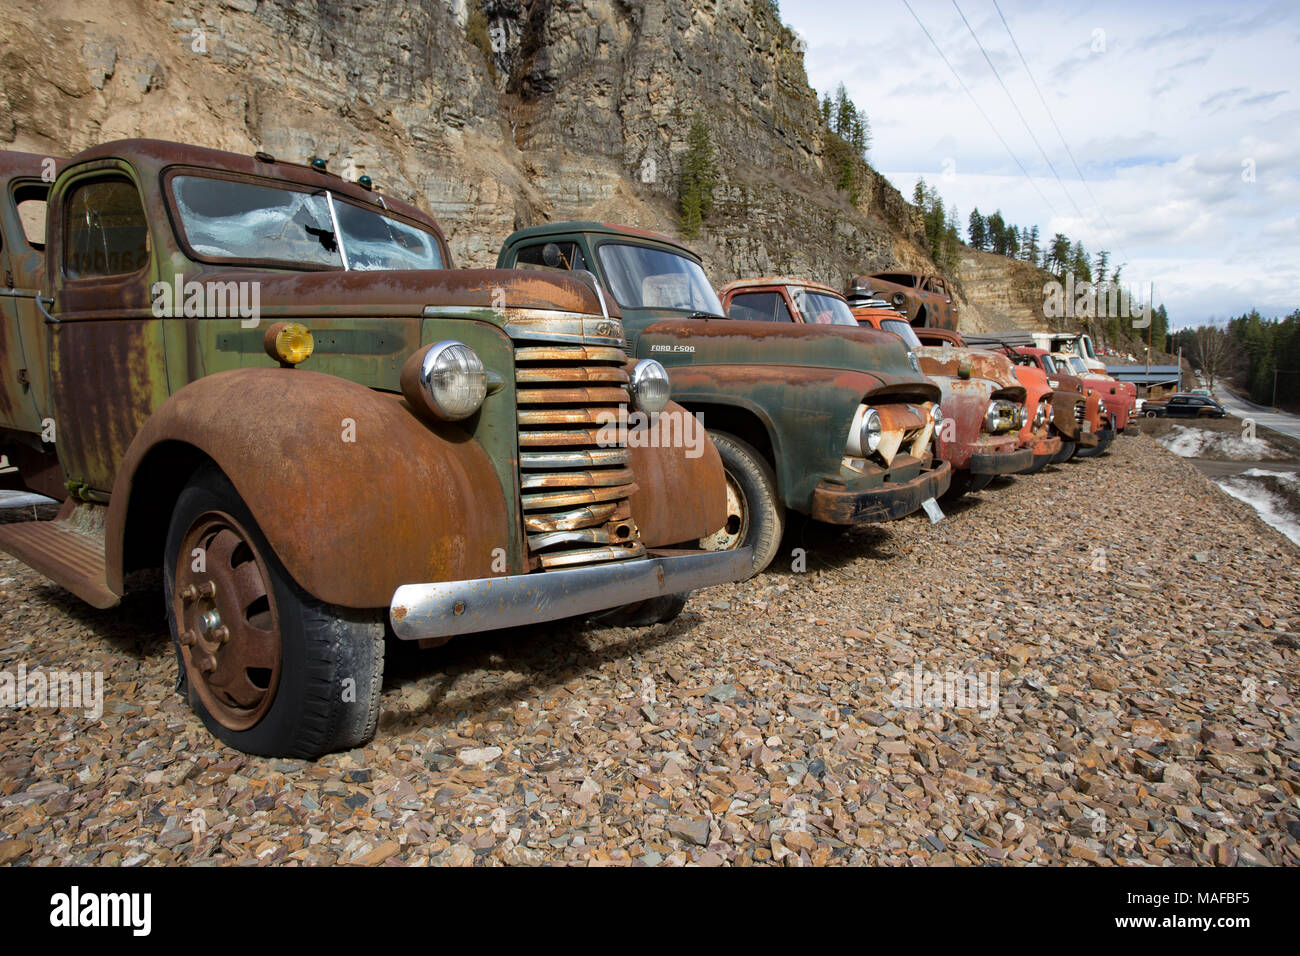 A 1939 GMC work truck, in a line of old trucks, at an old stone ...